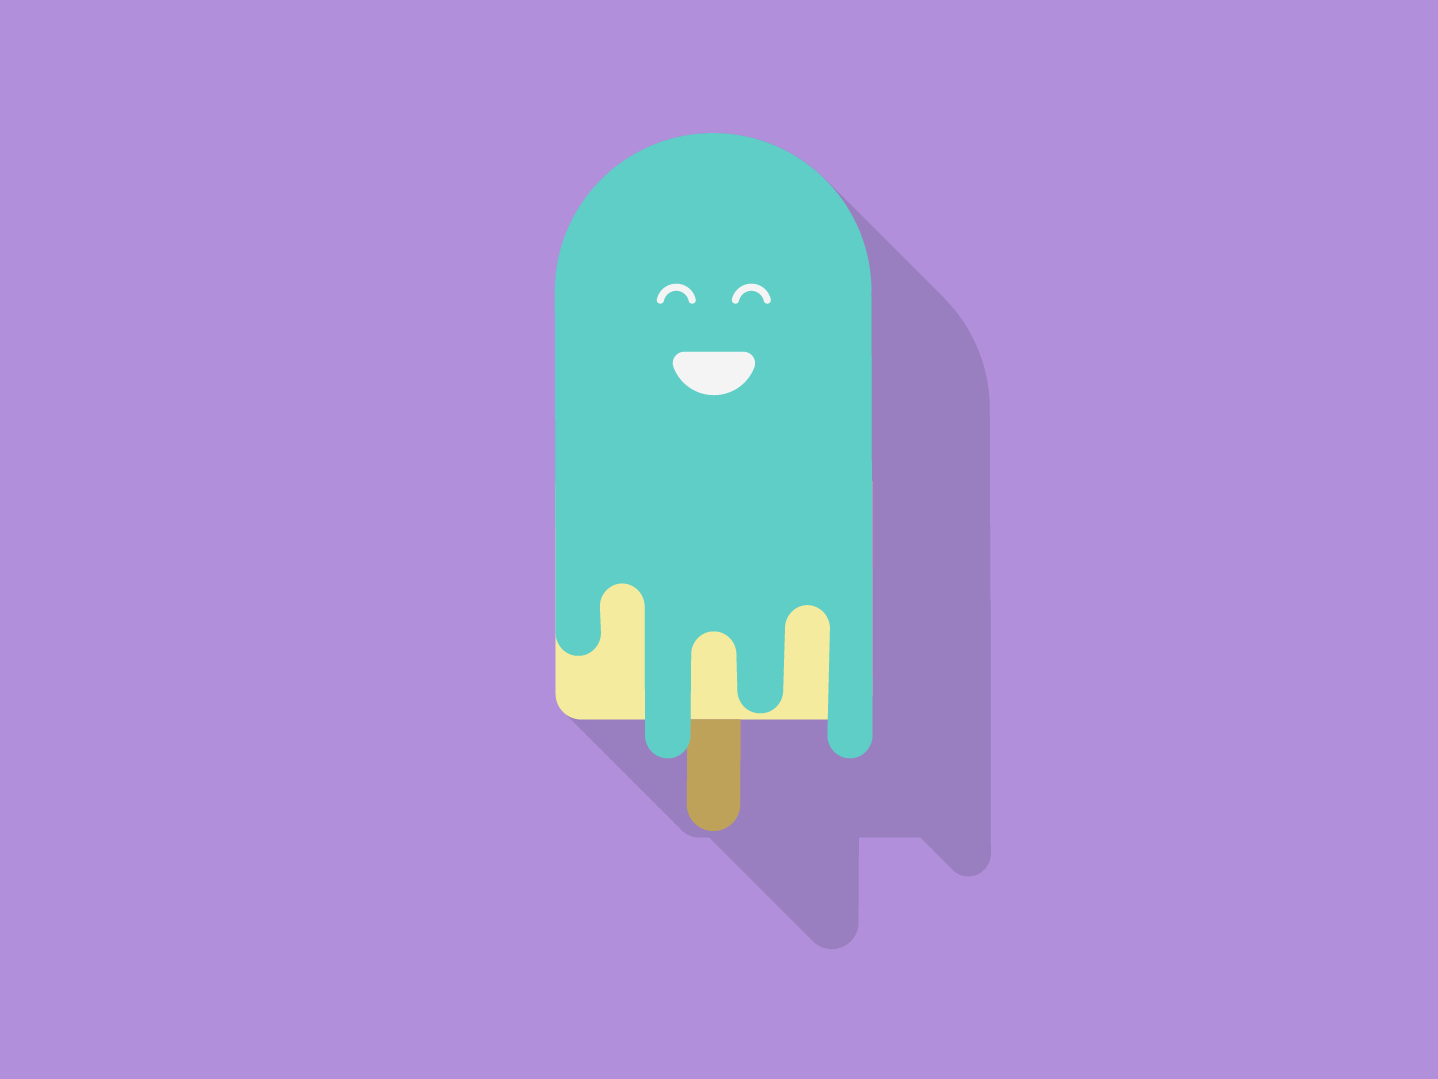 Flat Ice cream vector design flat illustration